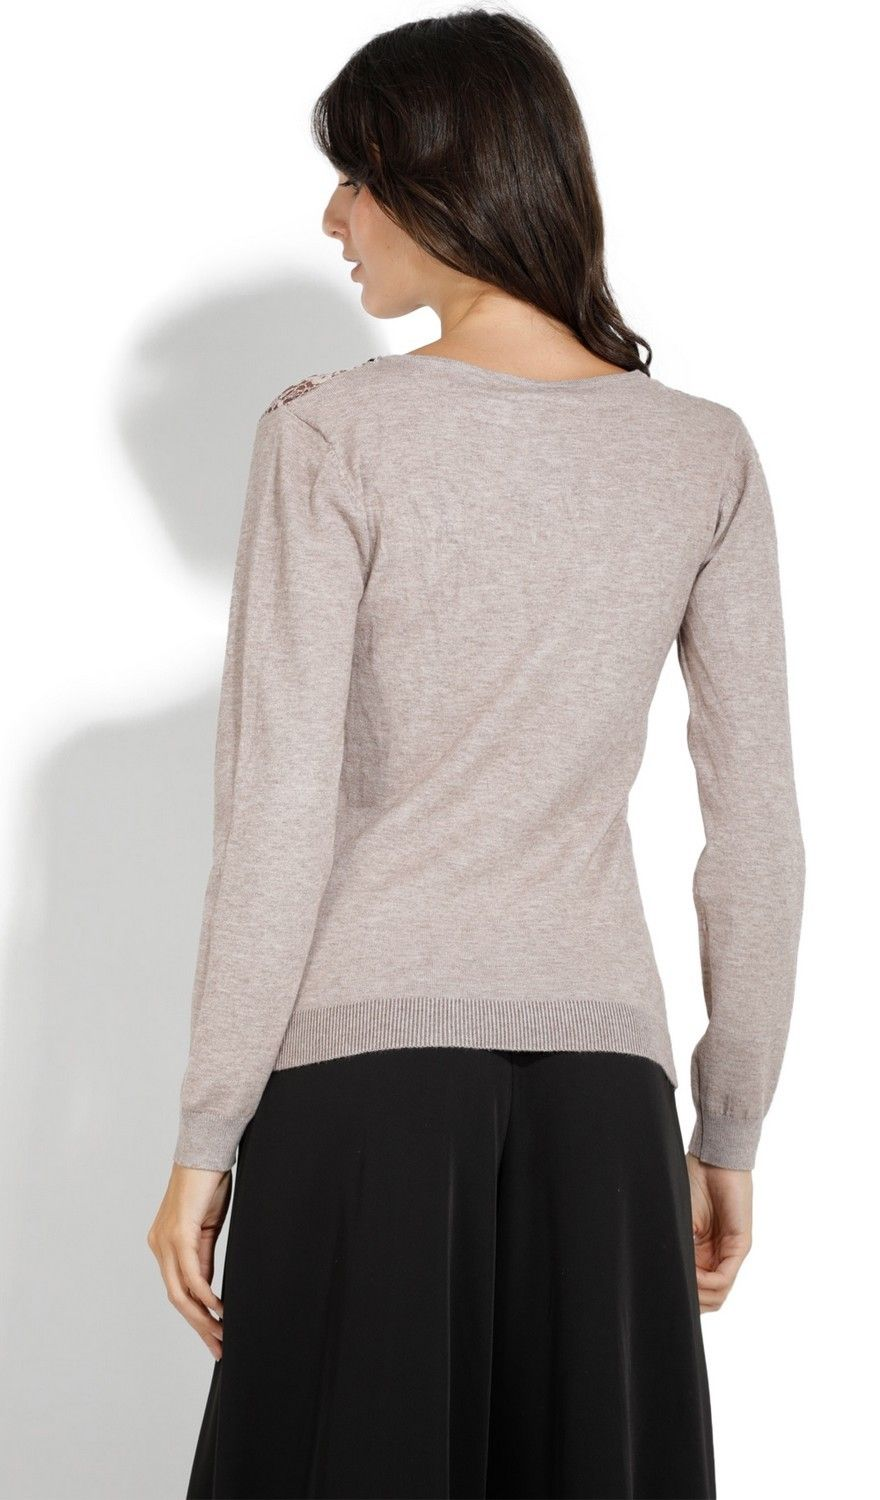 Assuili V-neck Long Sleeve Sweater with Lace in Beige